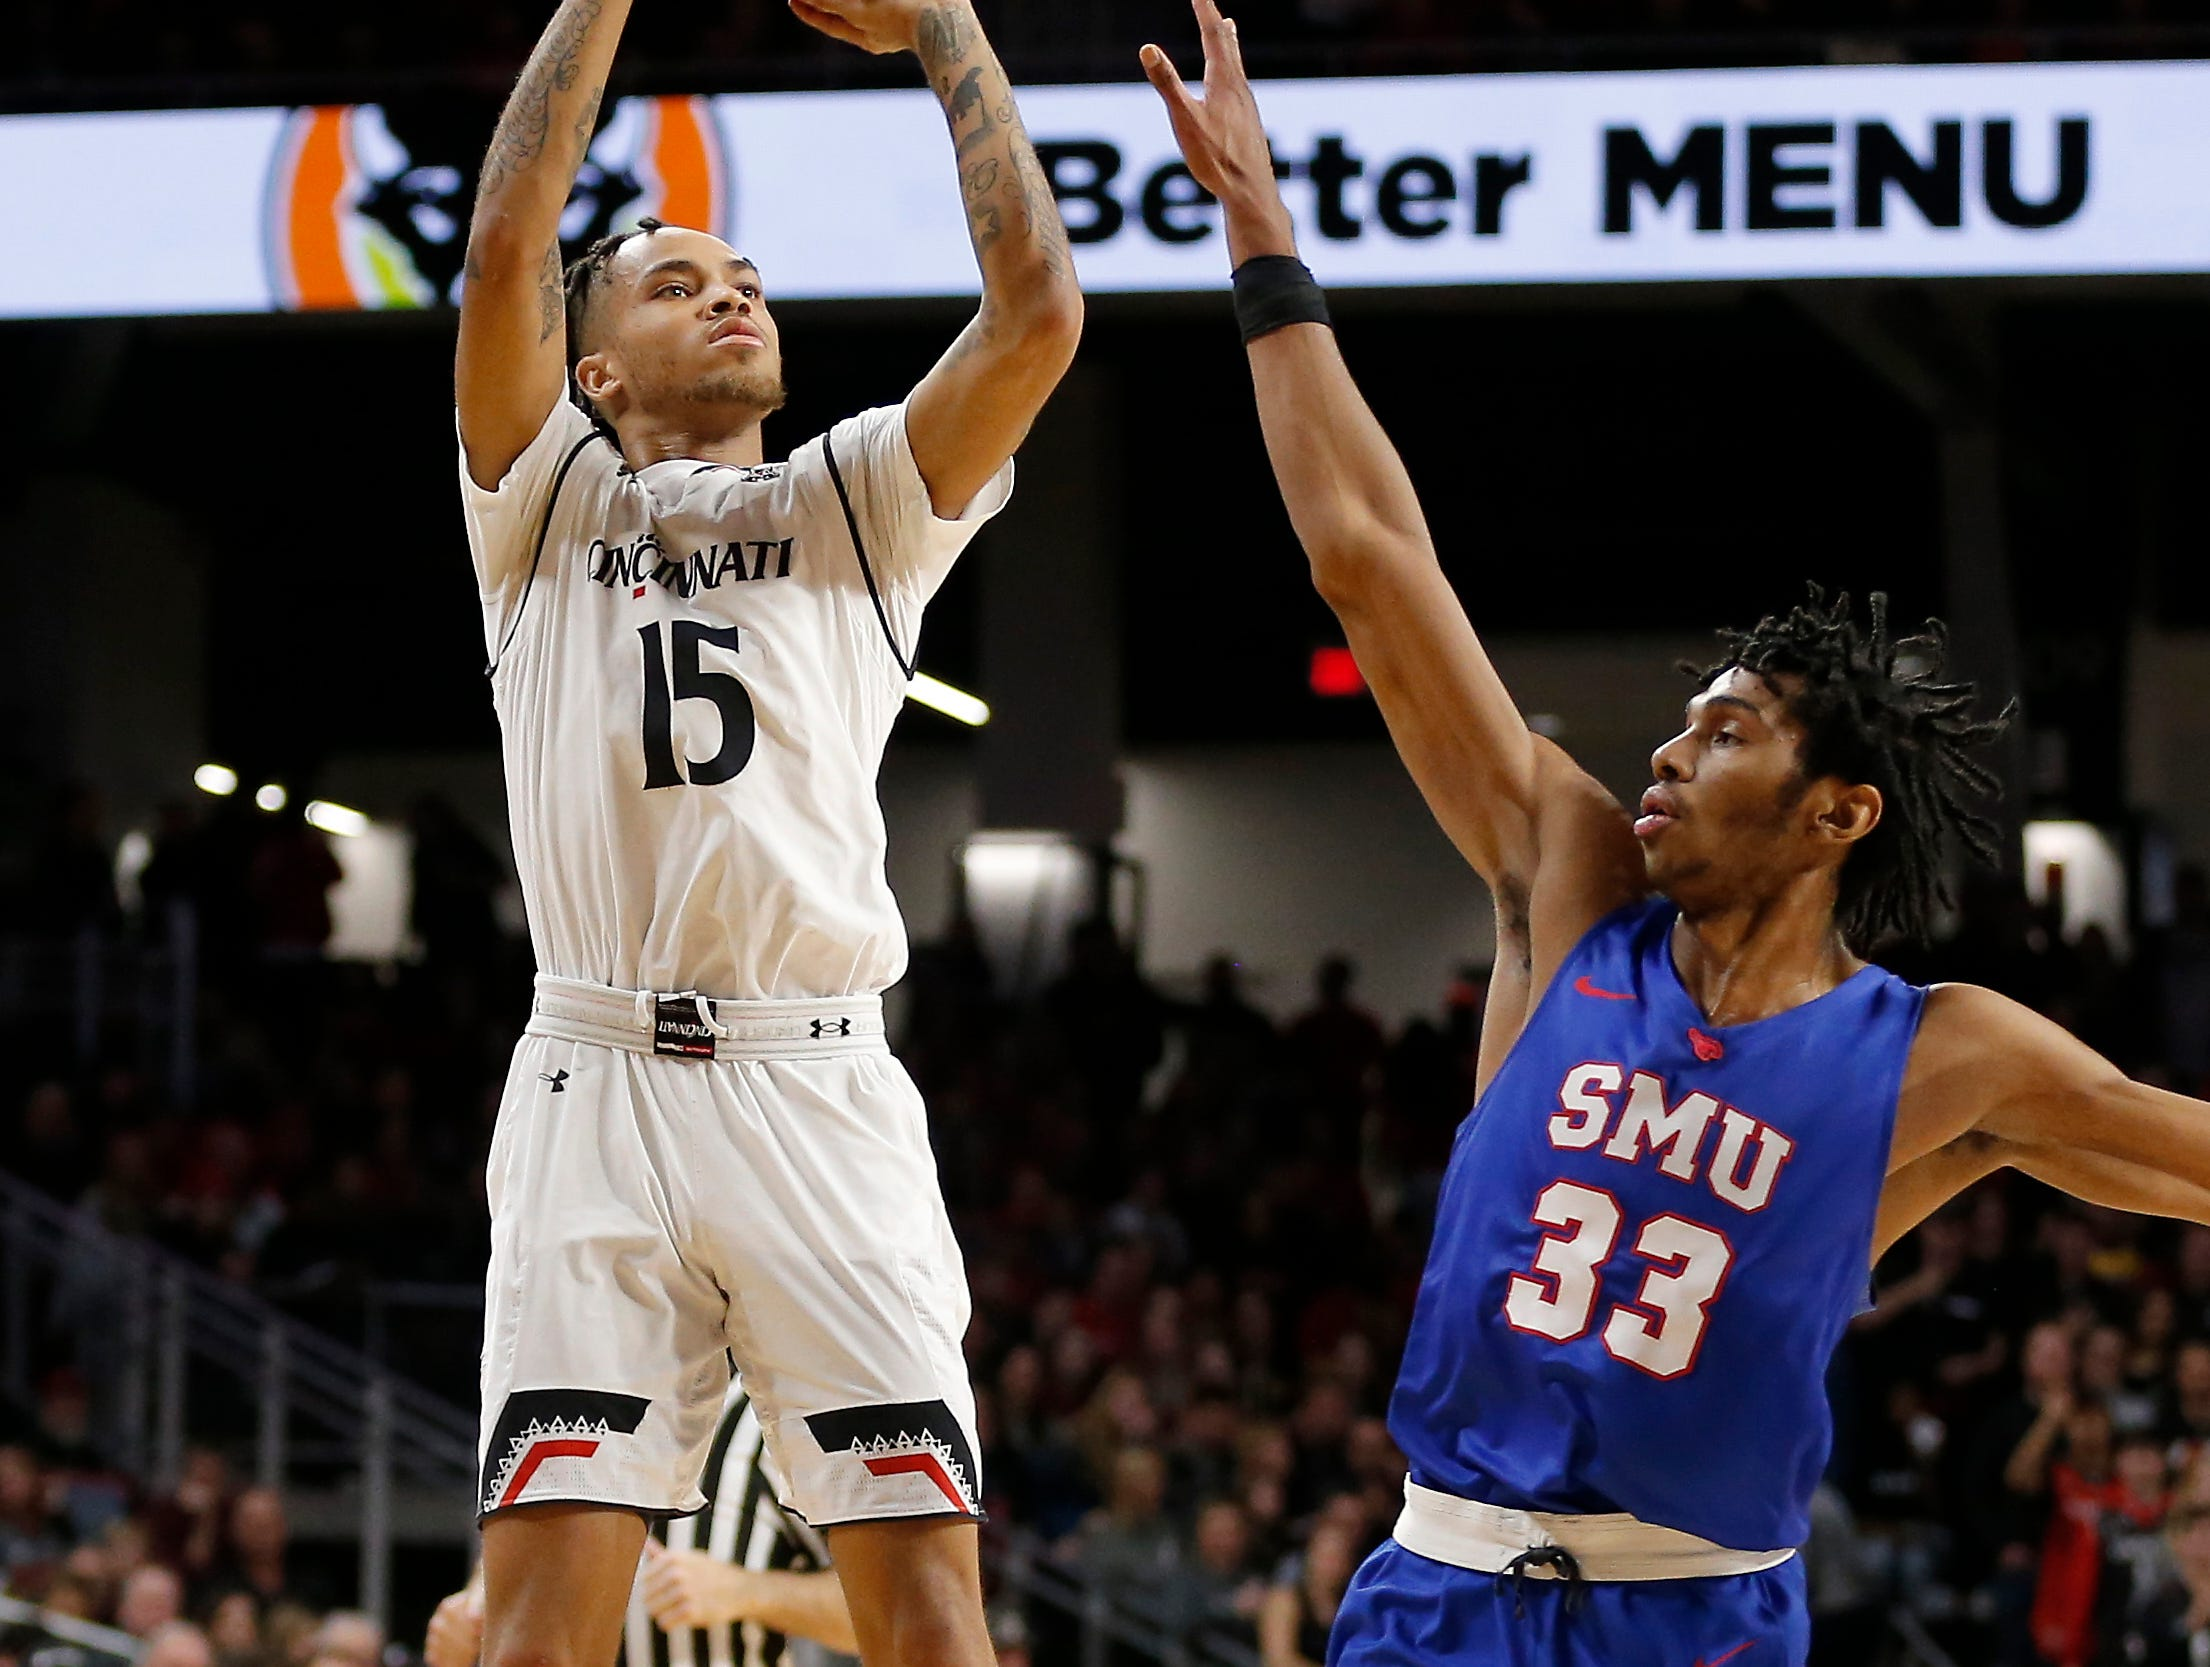 Cincinnati Bearcats guard Cane Broome (15) shoots from three point range in the first half the the NCAA American Athletic Conference basketball game between the Cincinnati Bearcats and the Southern Methodist Mustangs at Fifth Third Arena in Cincinnati on Saturday, Feb. 2, 2019.